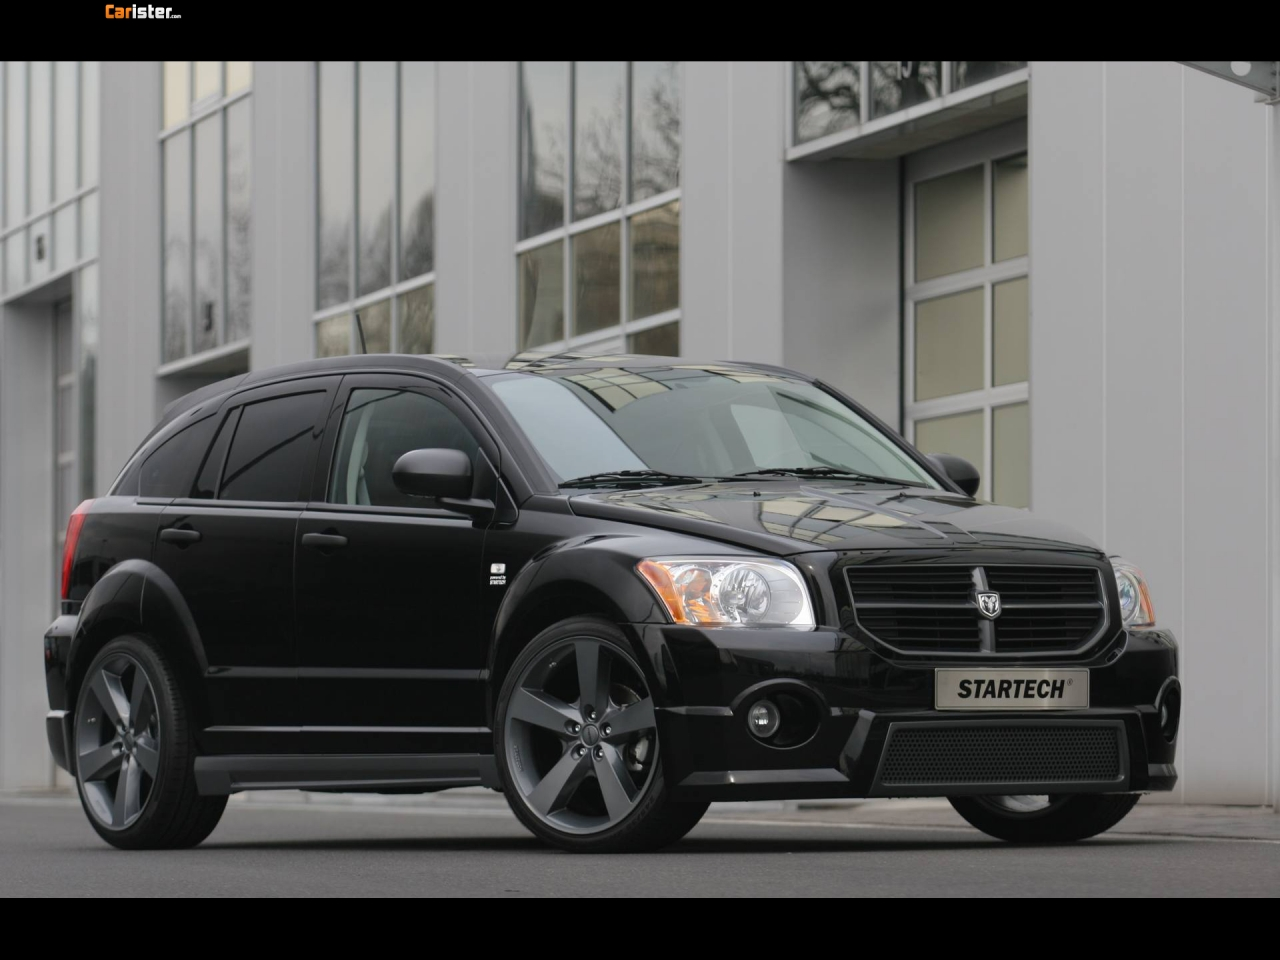 Startech Dodge Caliber 2007 - Photo 01 - Taille: 1280x960